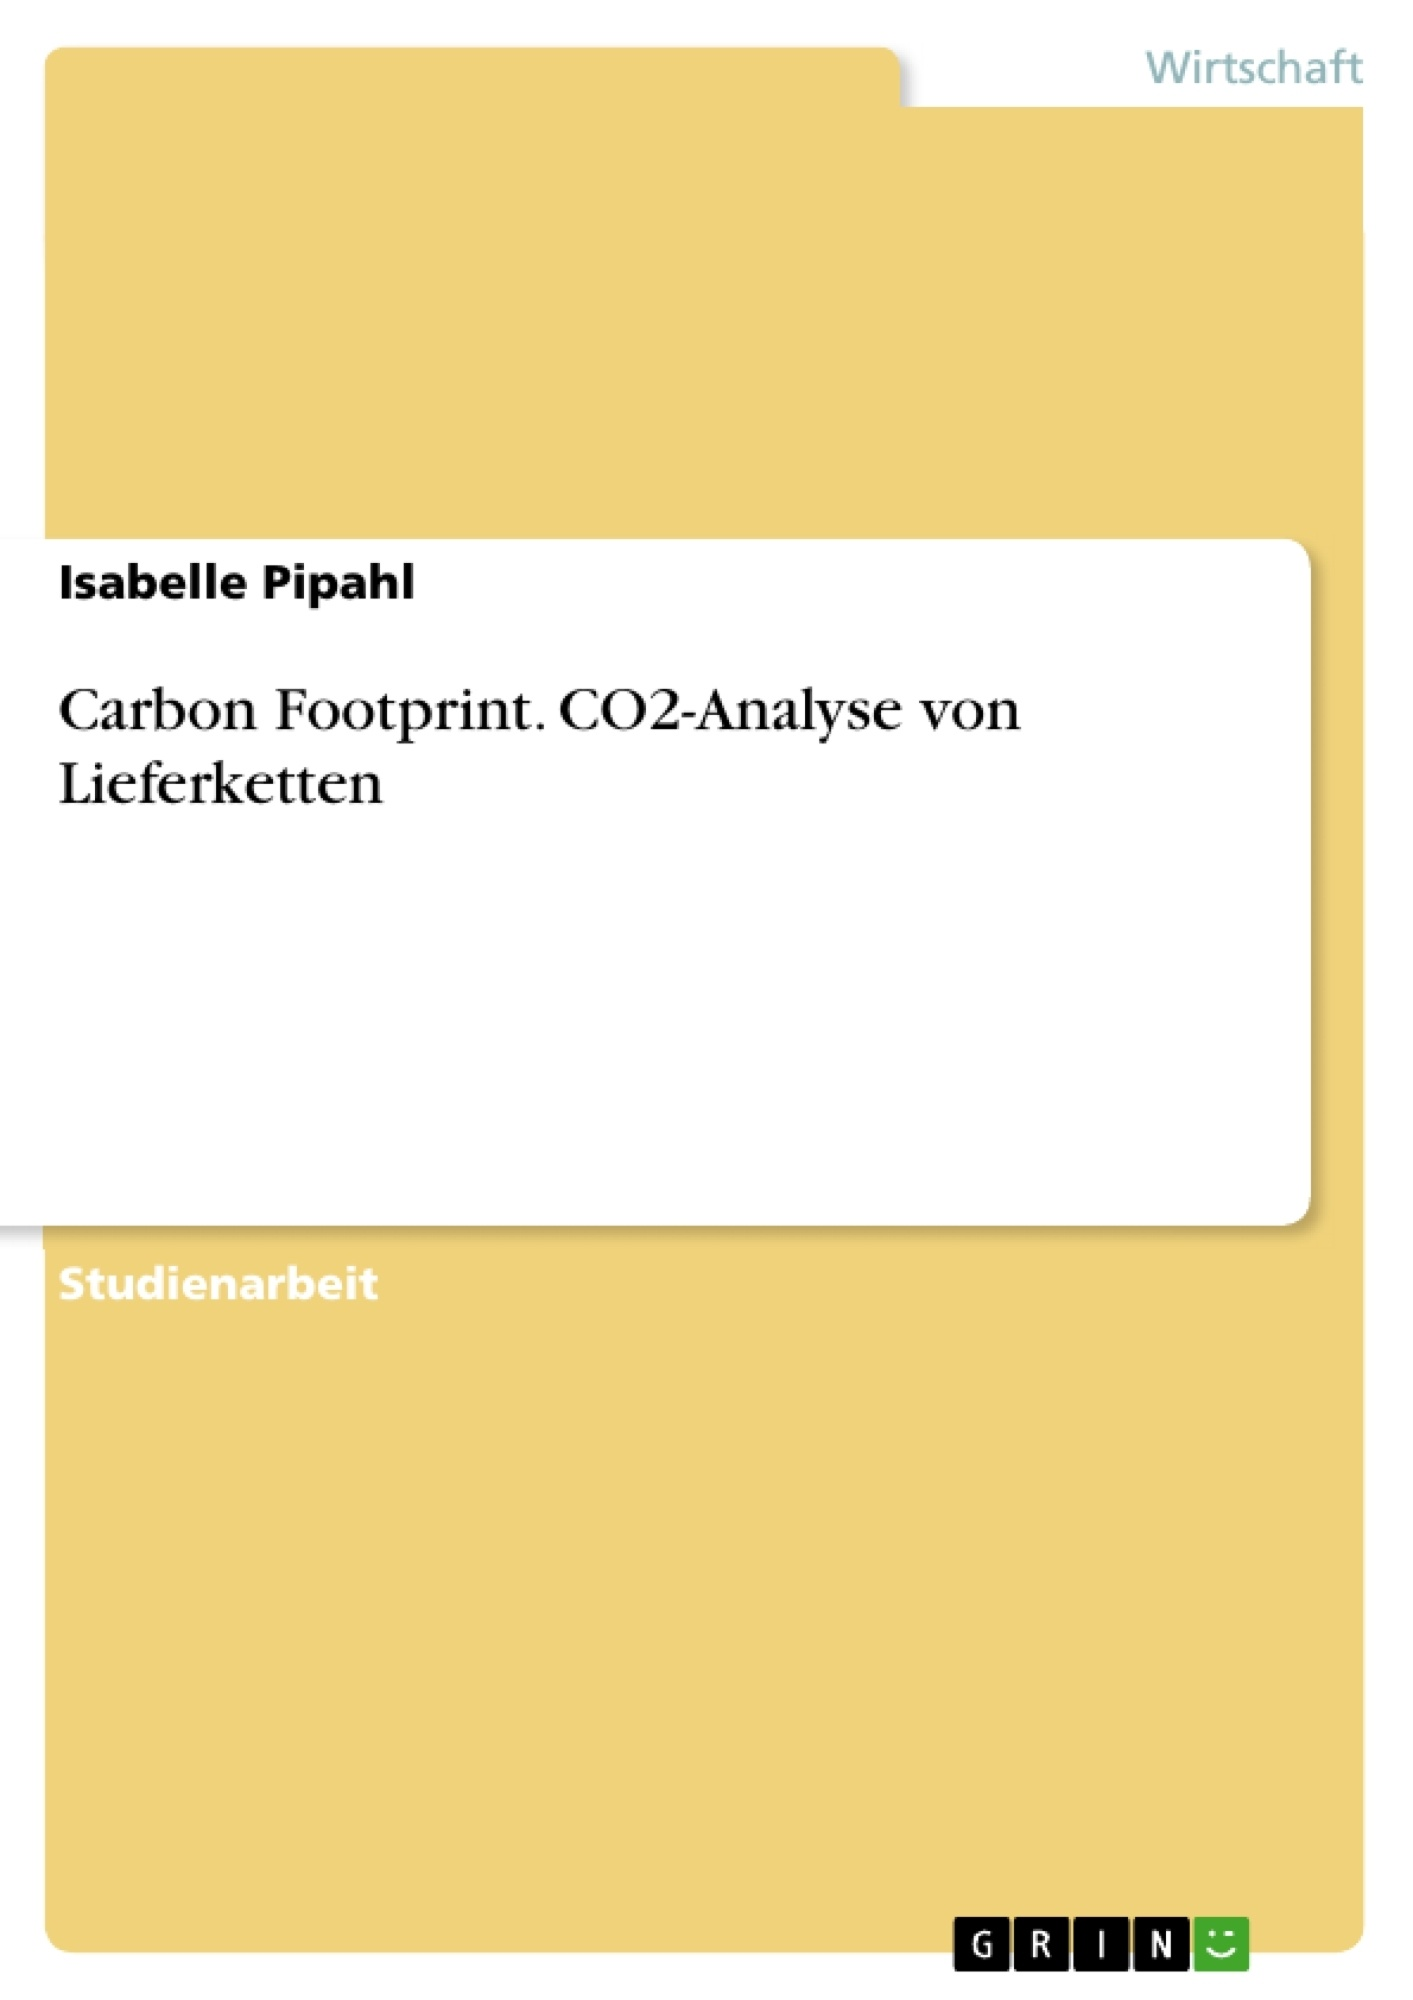 Titel: Carbon Footprint. CO2-Analyse von Lieferketten